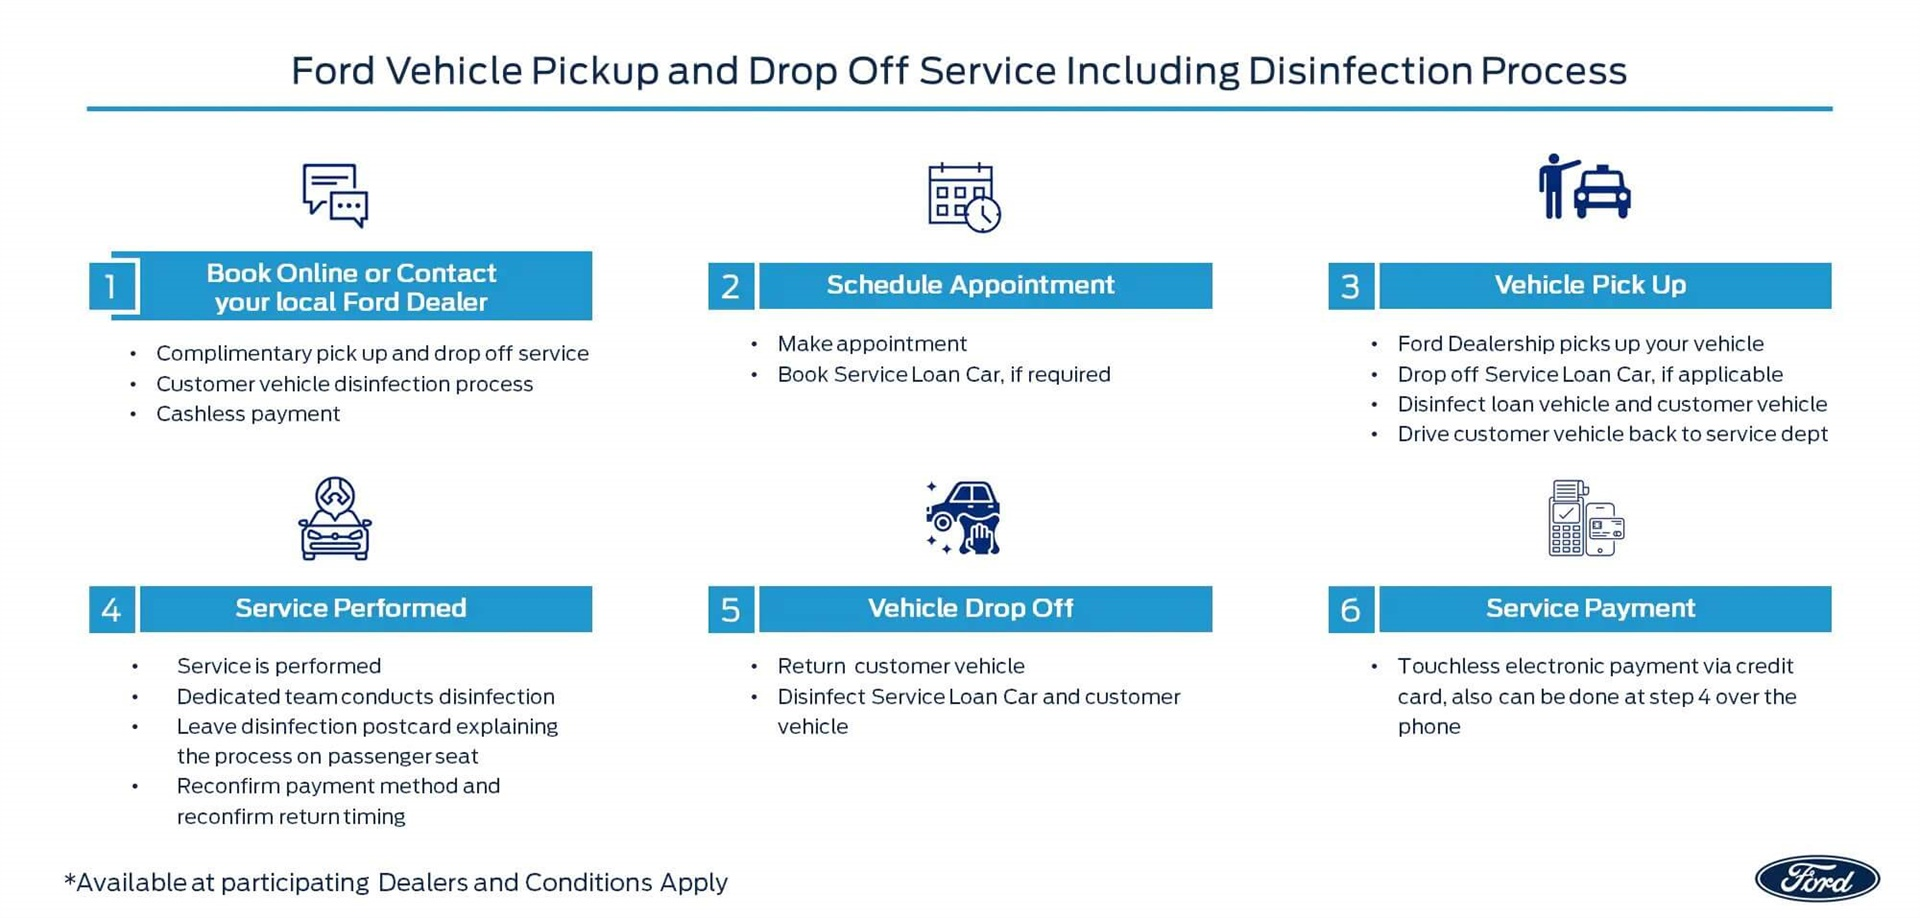 Ford Vehicle Pickup and Drop Off Service Including Disinfection Process